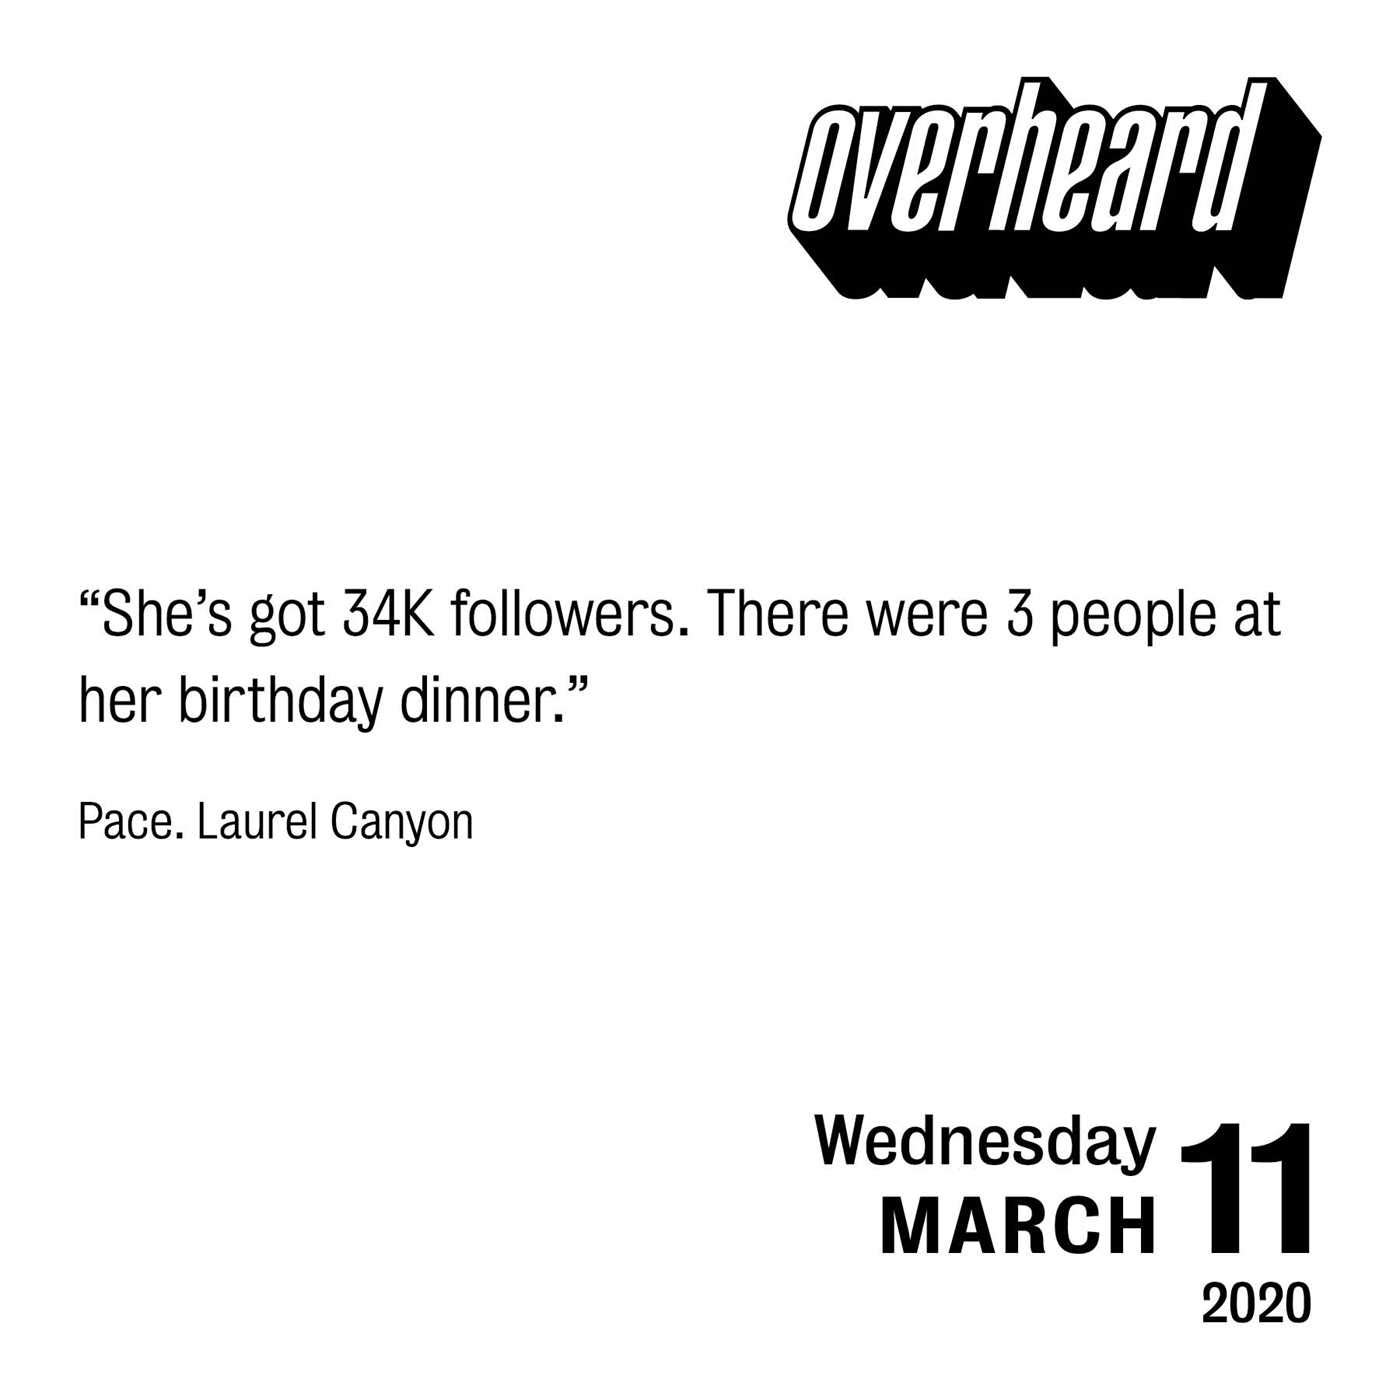 Conversations about culture in LA and New York Overheard 2020 Day-to-Day Calendar